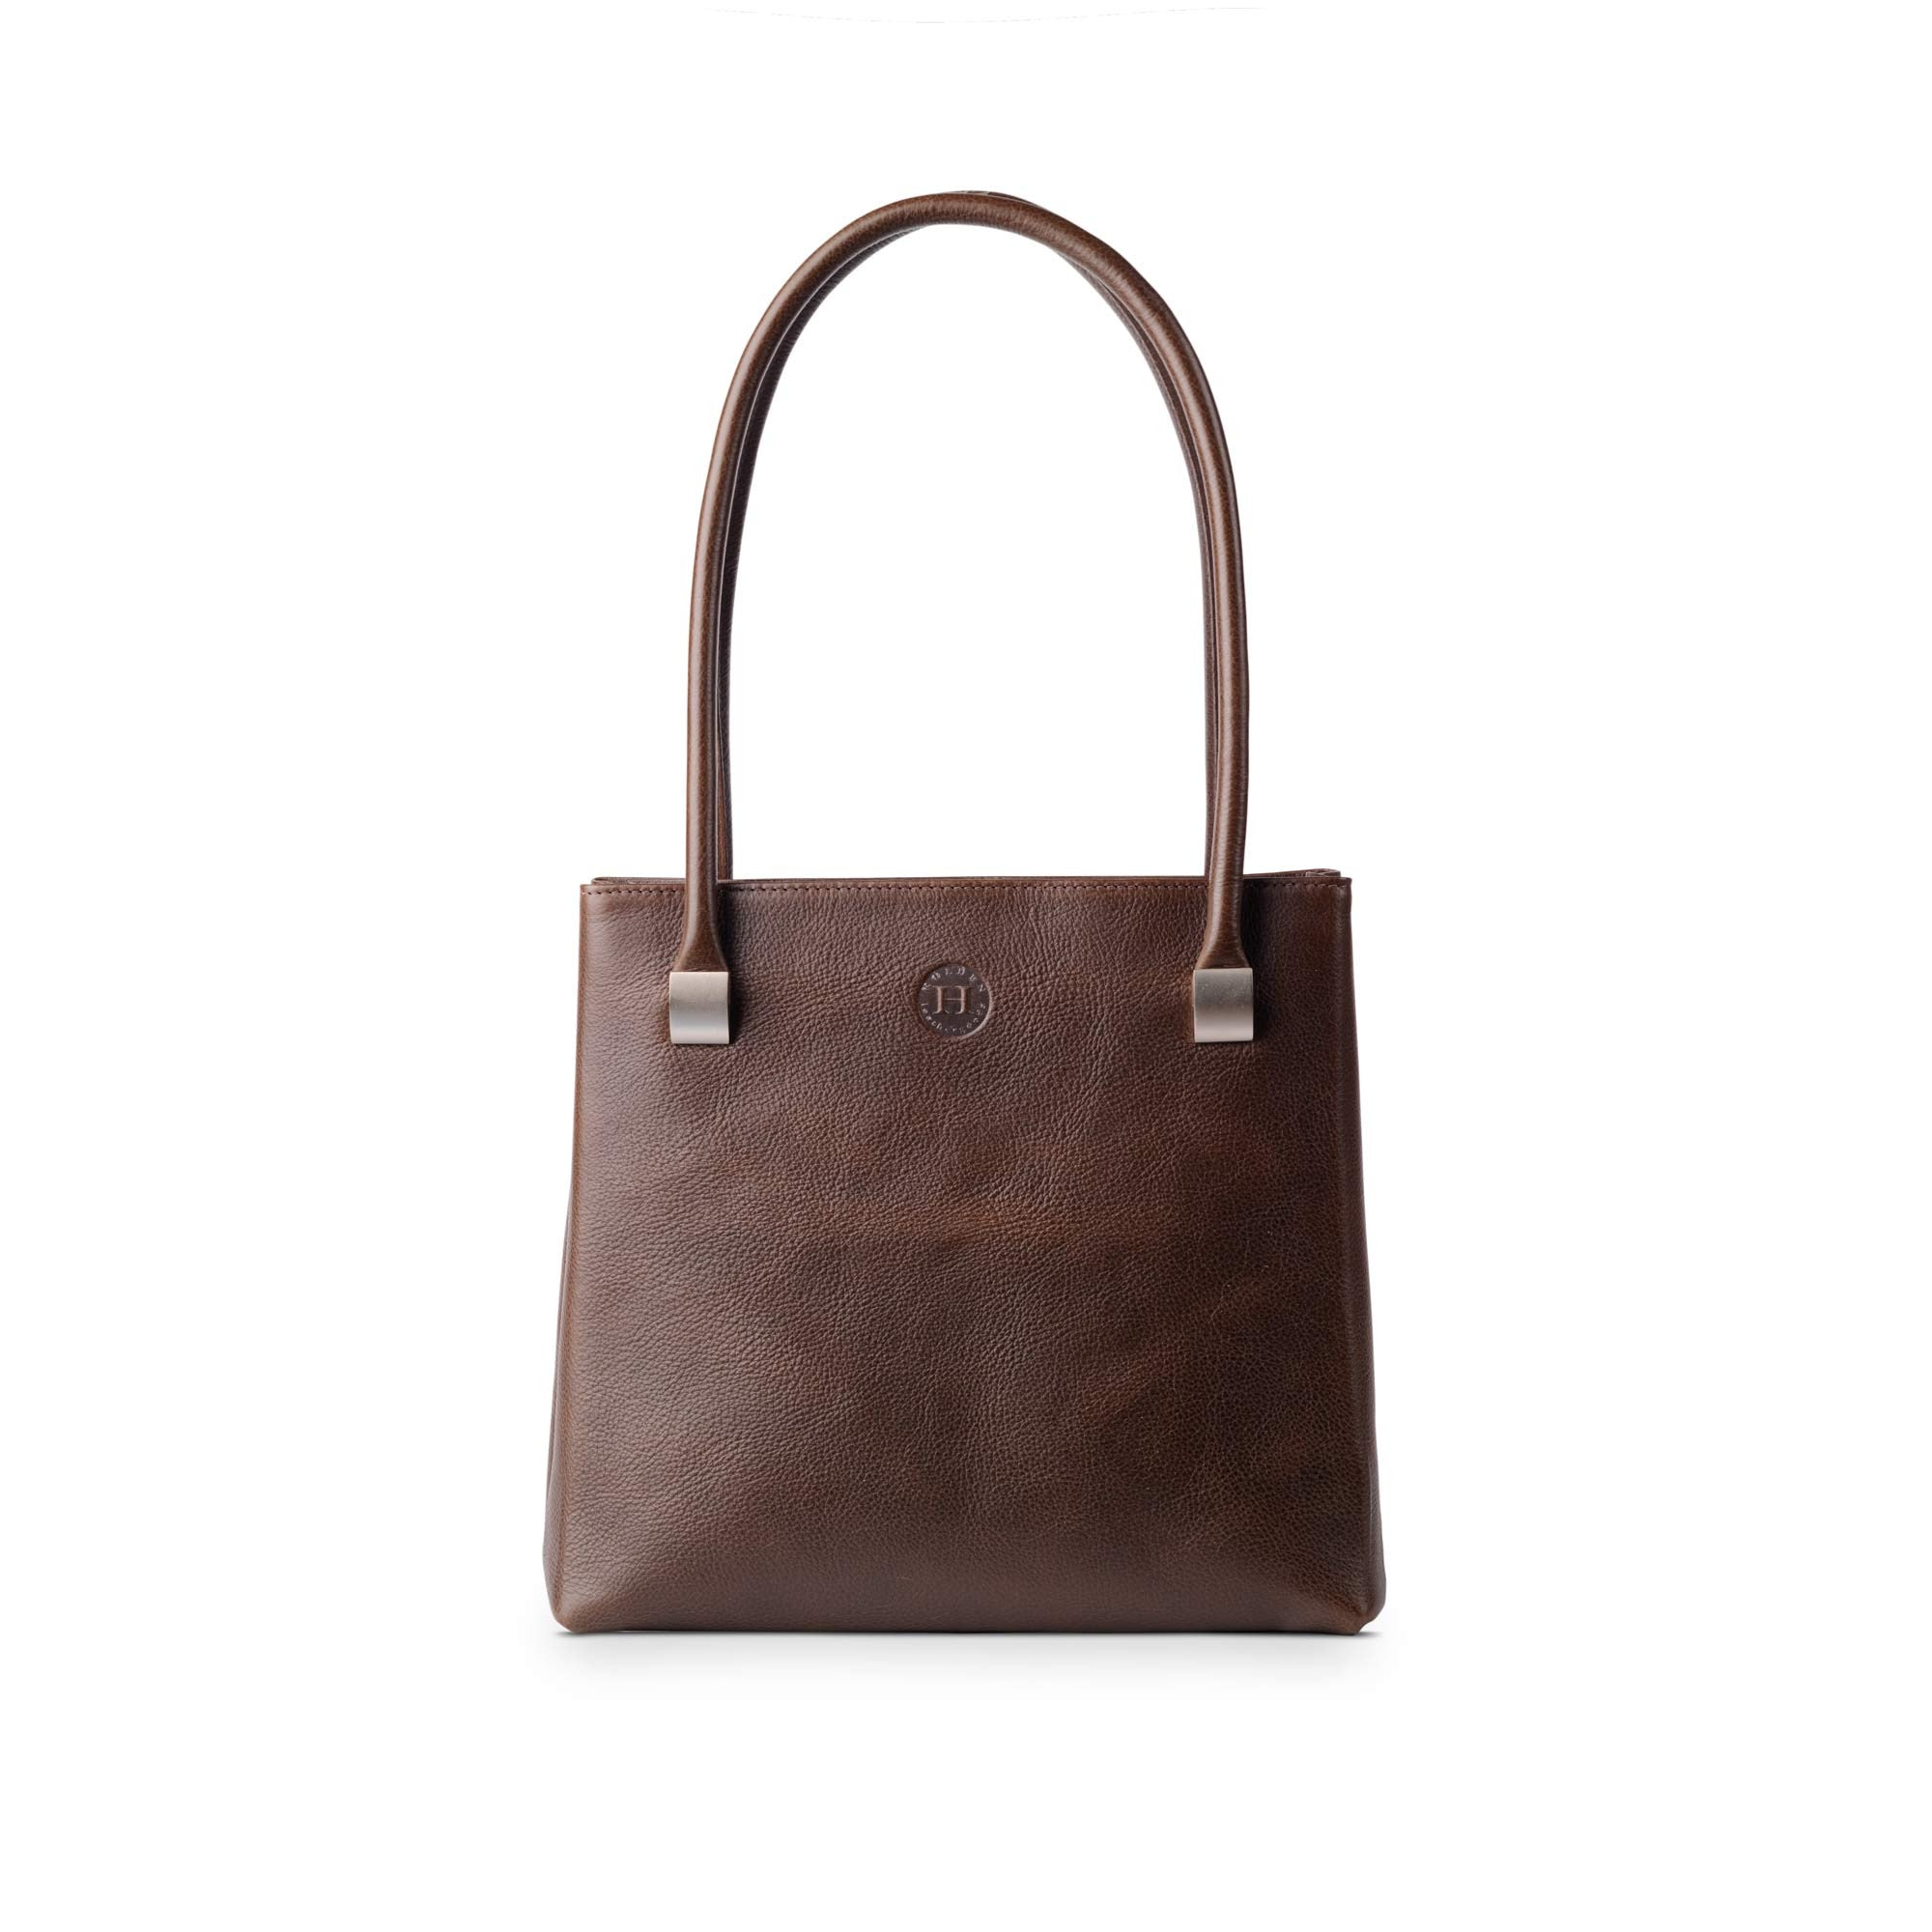 Aoife Leather Shoulder Bag Dark Brown - Holden Leathergoods, leather bags handmade in Ireland